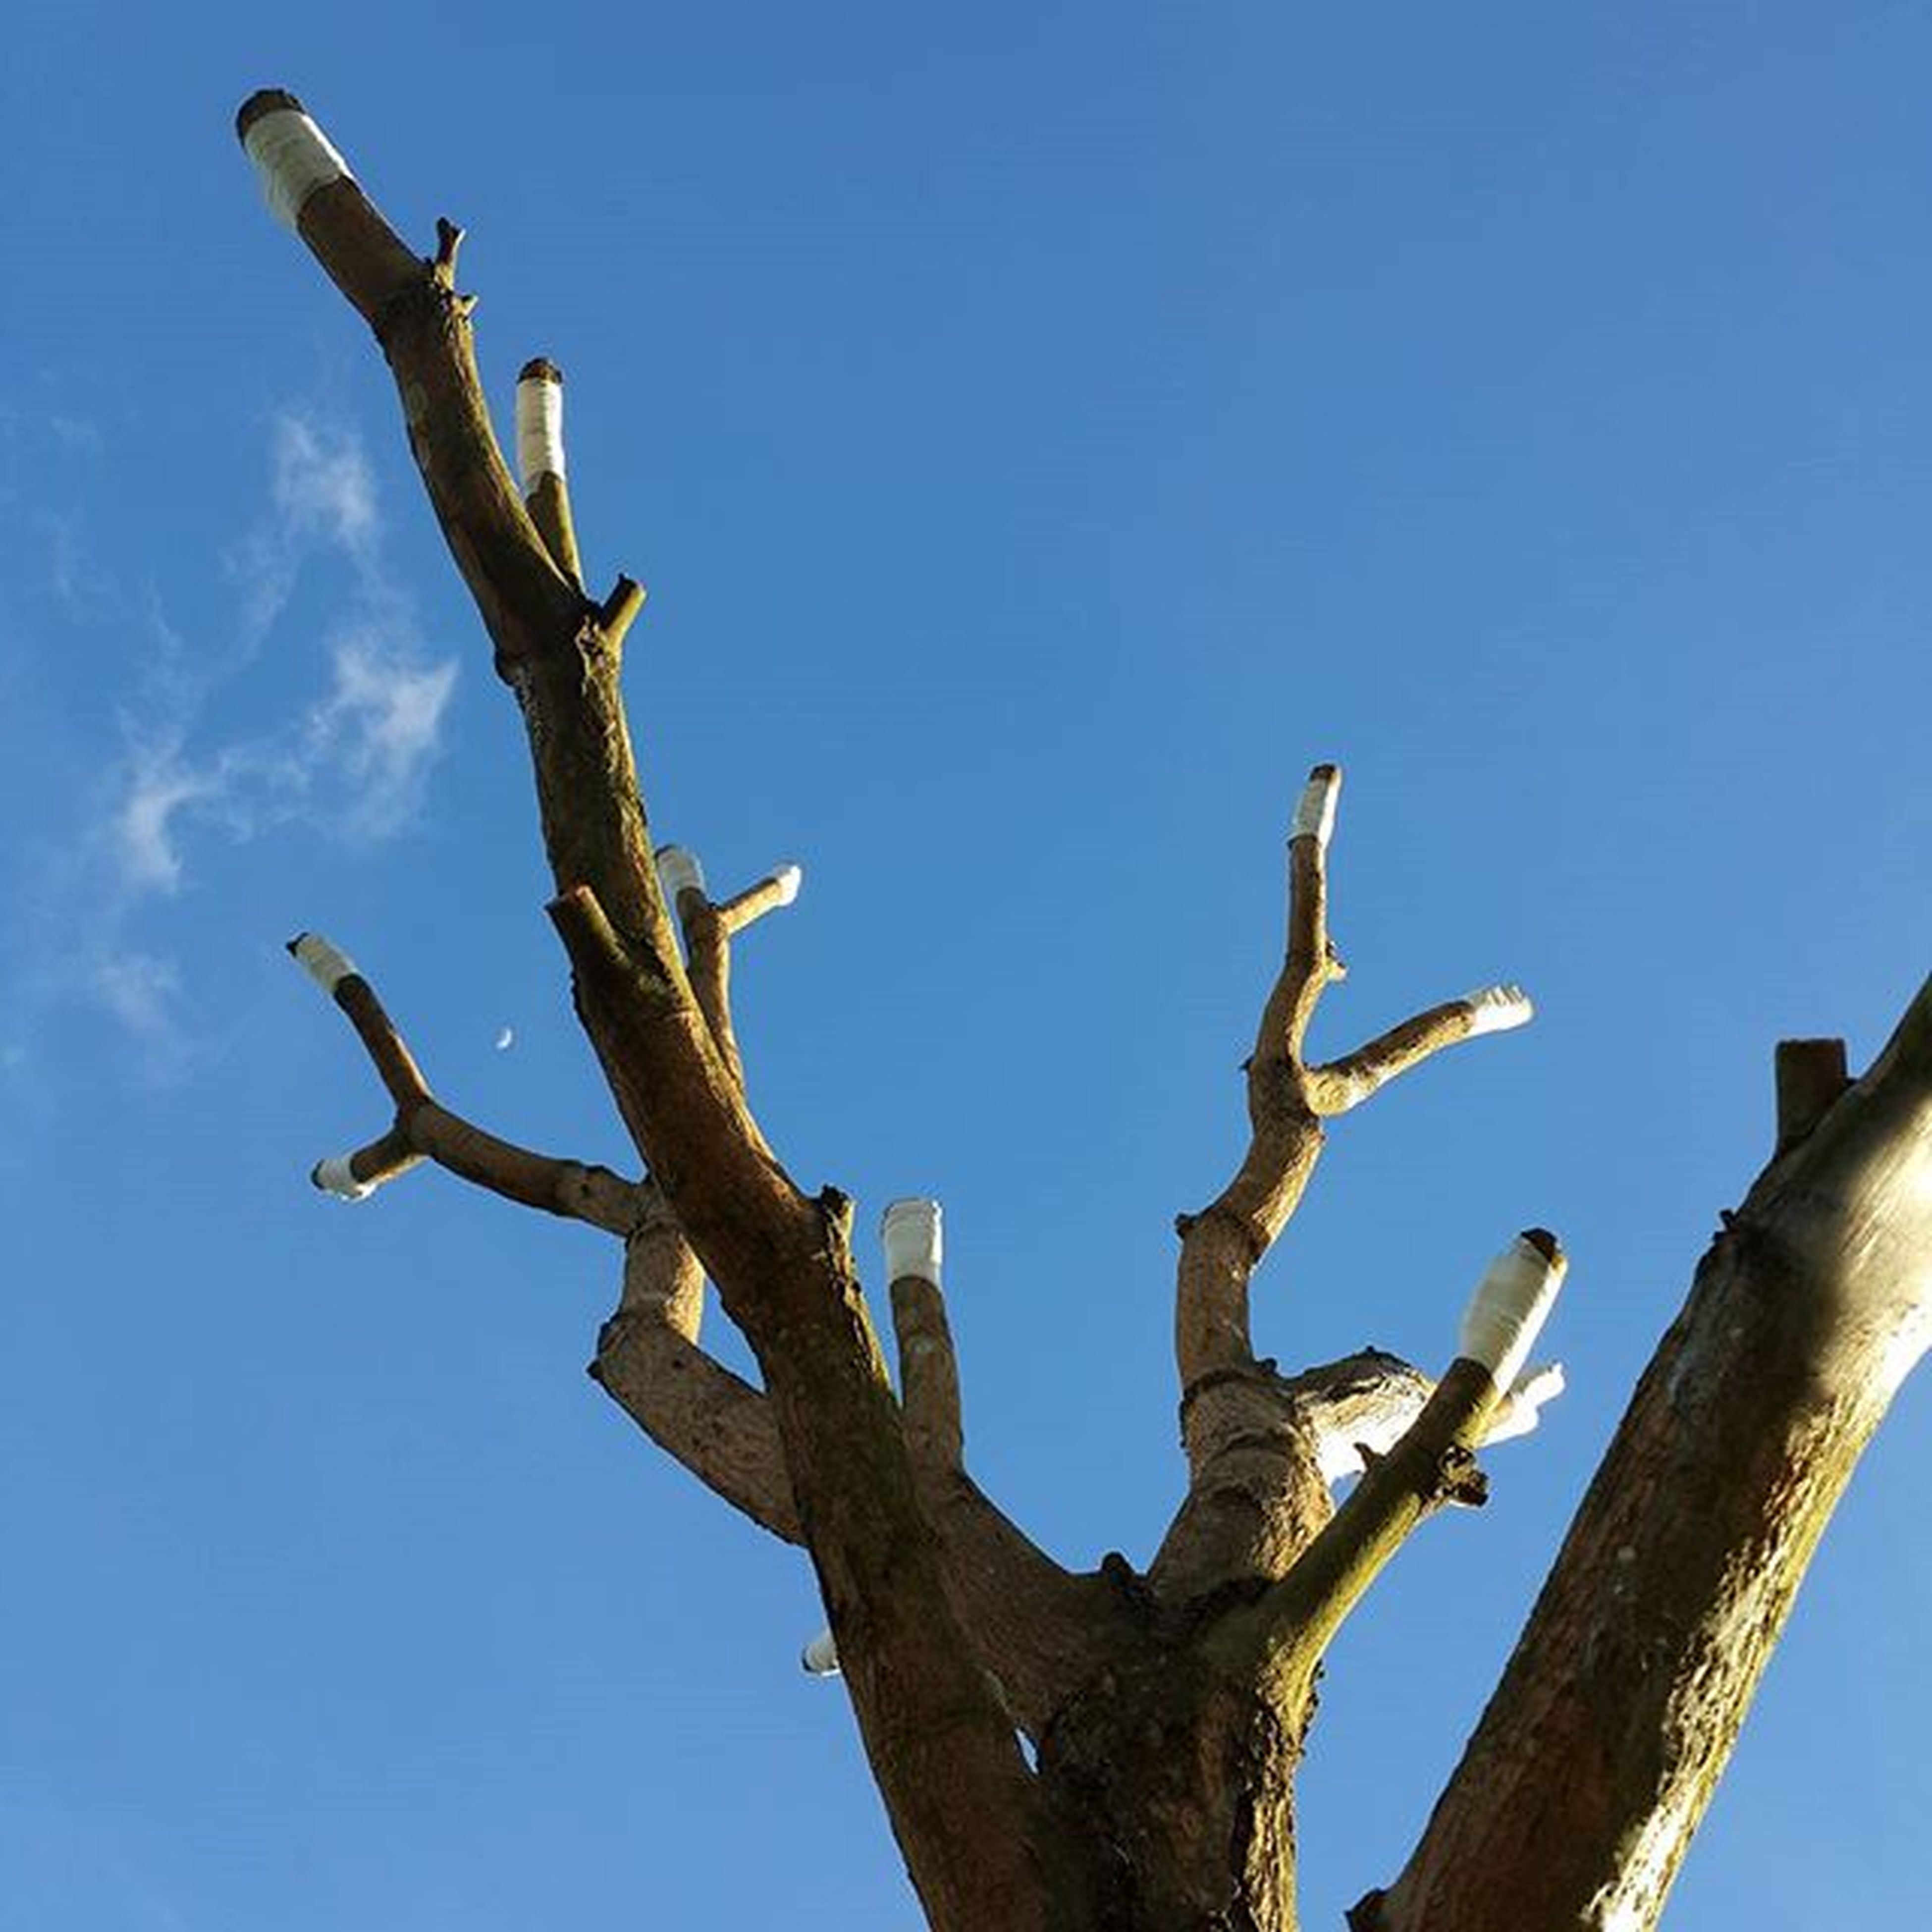 low angle view, clear sky, blue, branch, tree, bare tree, nature, sky, bird, tree trunk, day, copy space, perching, outdoors, dead plant, no people, wood - material, tranquility, animal themes, wildlife